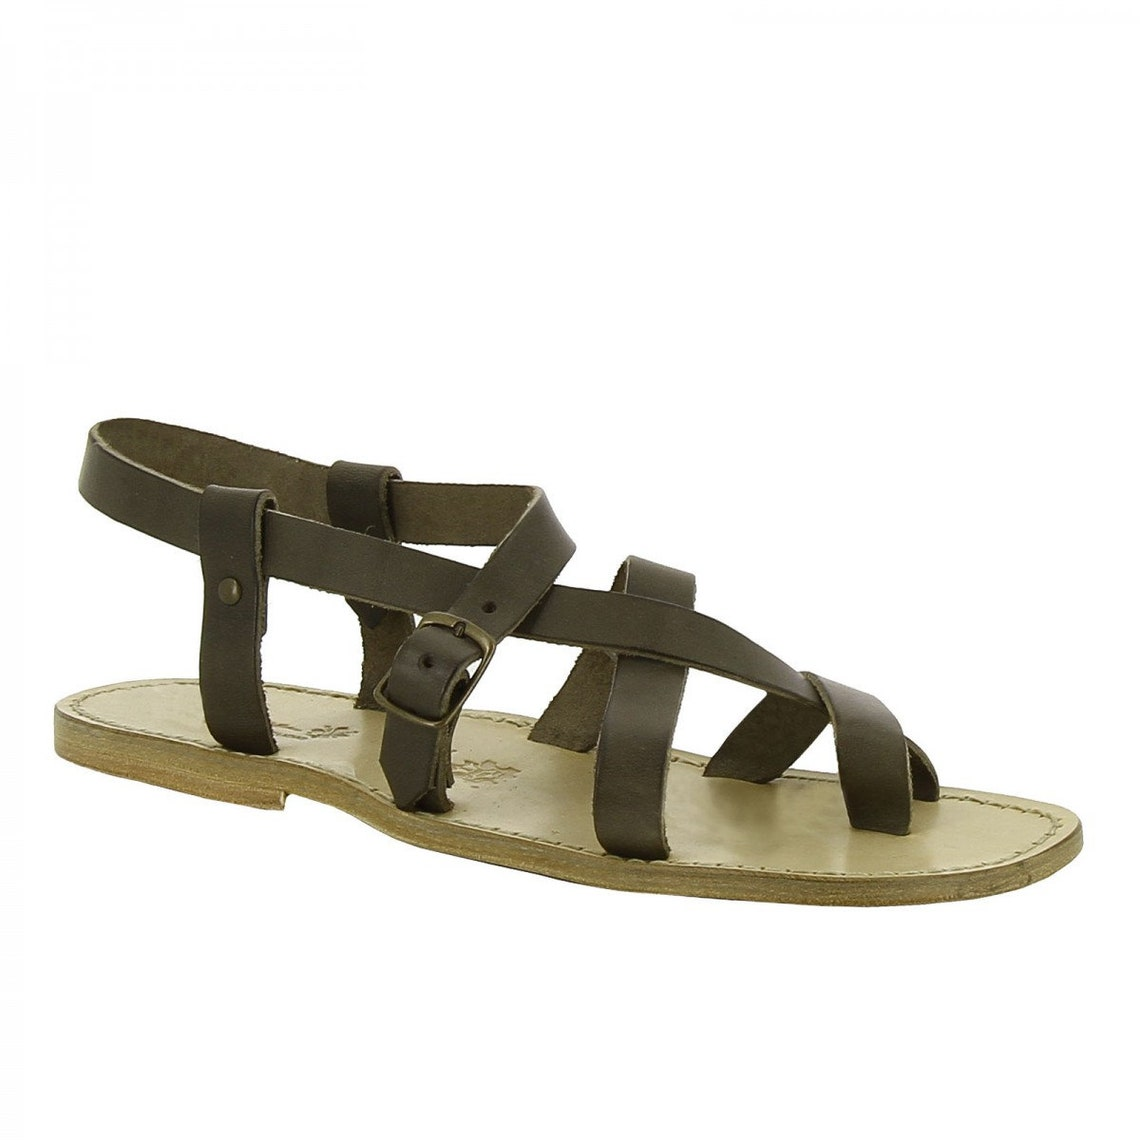 Gladiator sandals for men in mud color calf leather |